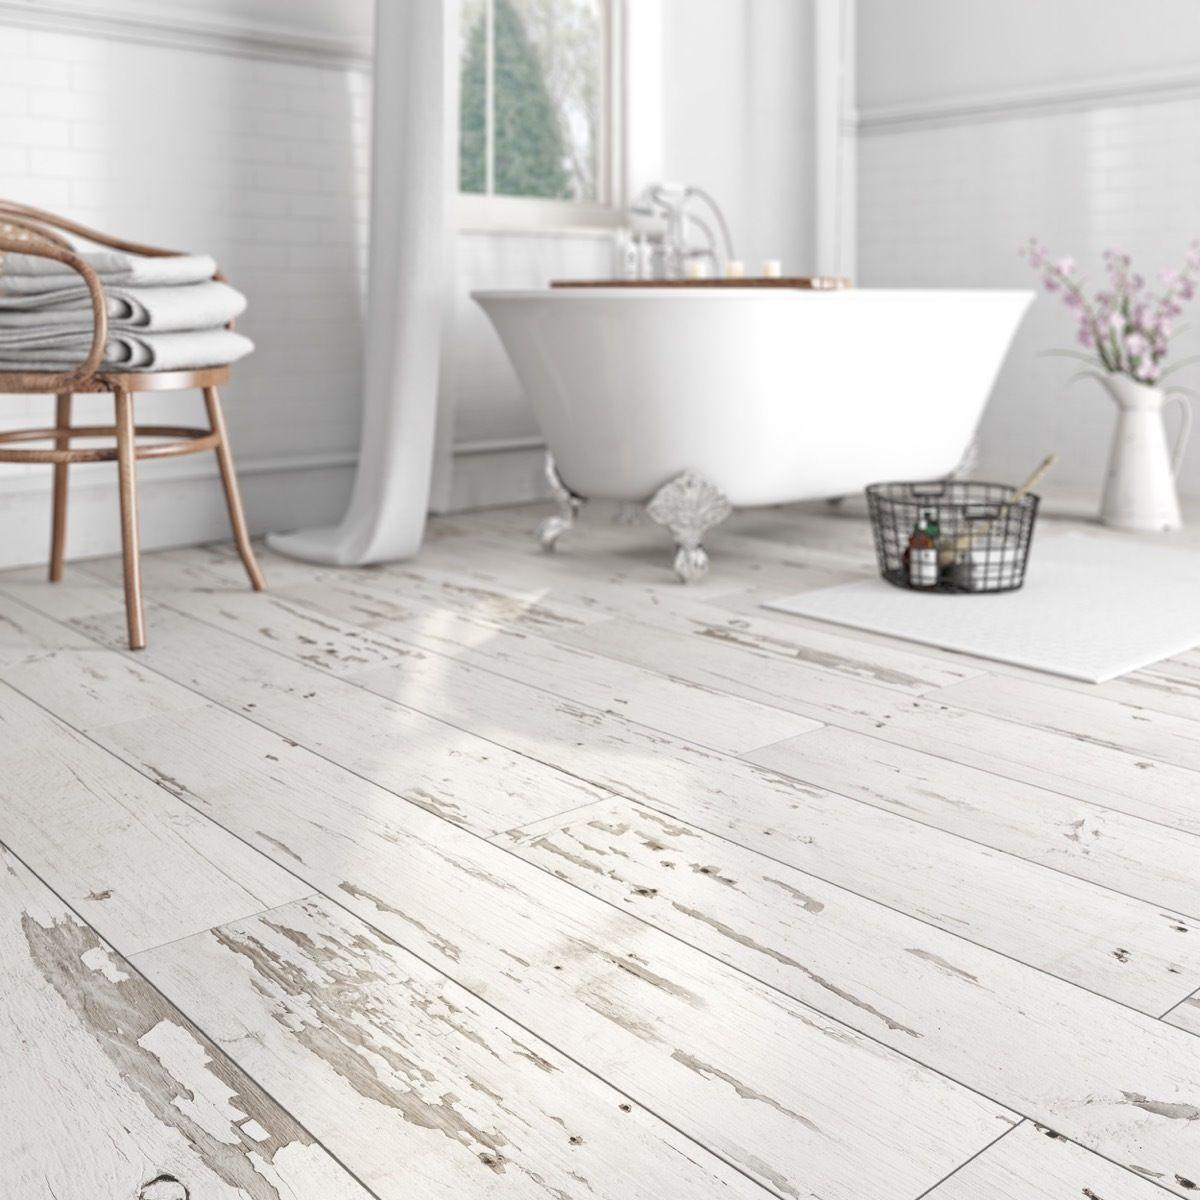 Krono Xonic Pennsylvania waterproof vinyl flooring | Pennsylvania